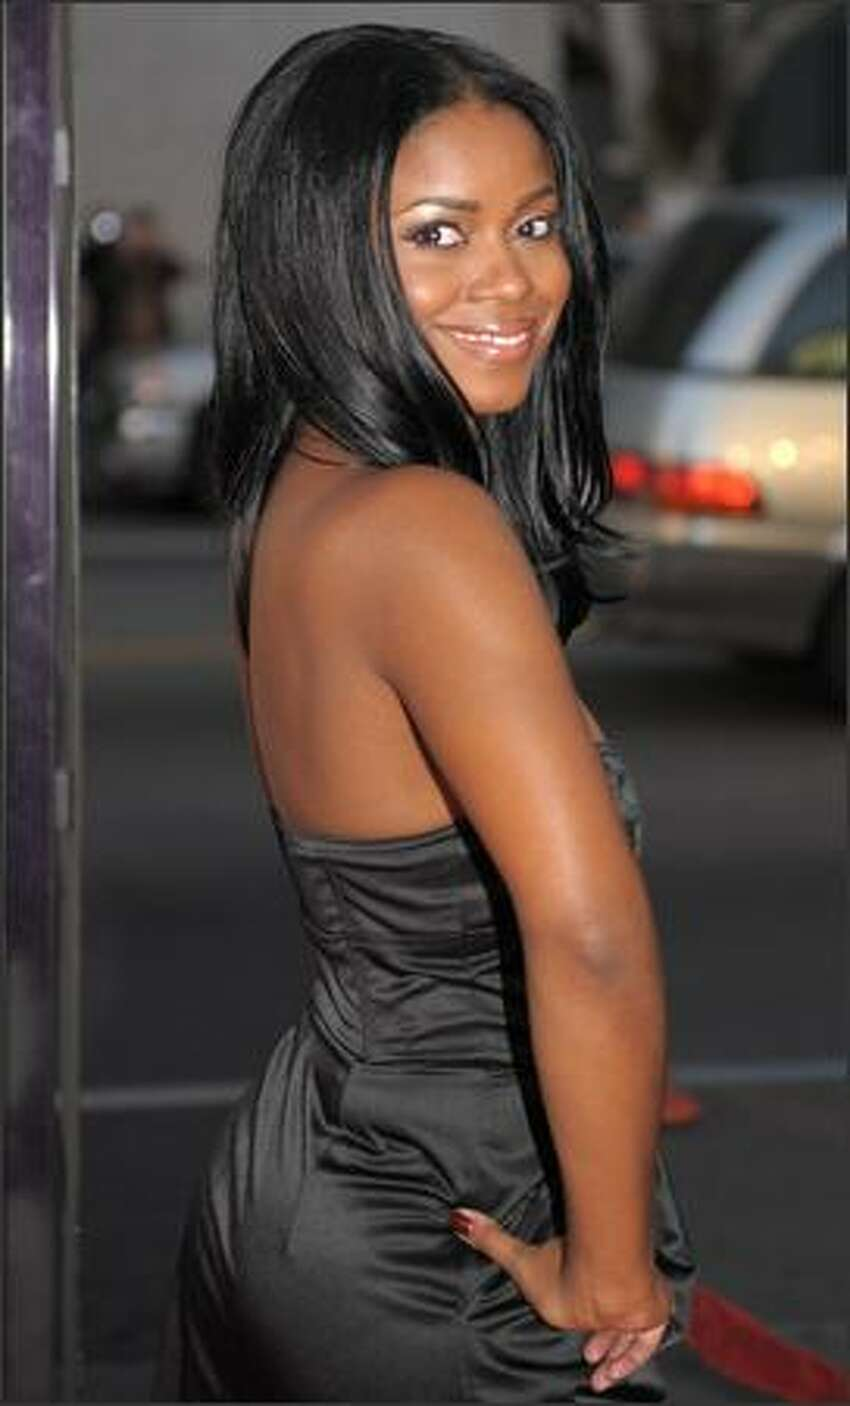 Actress Serena Reeder arrives at the premiere of